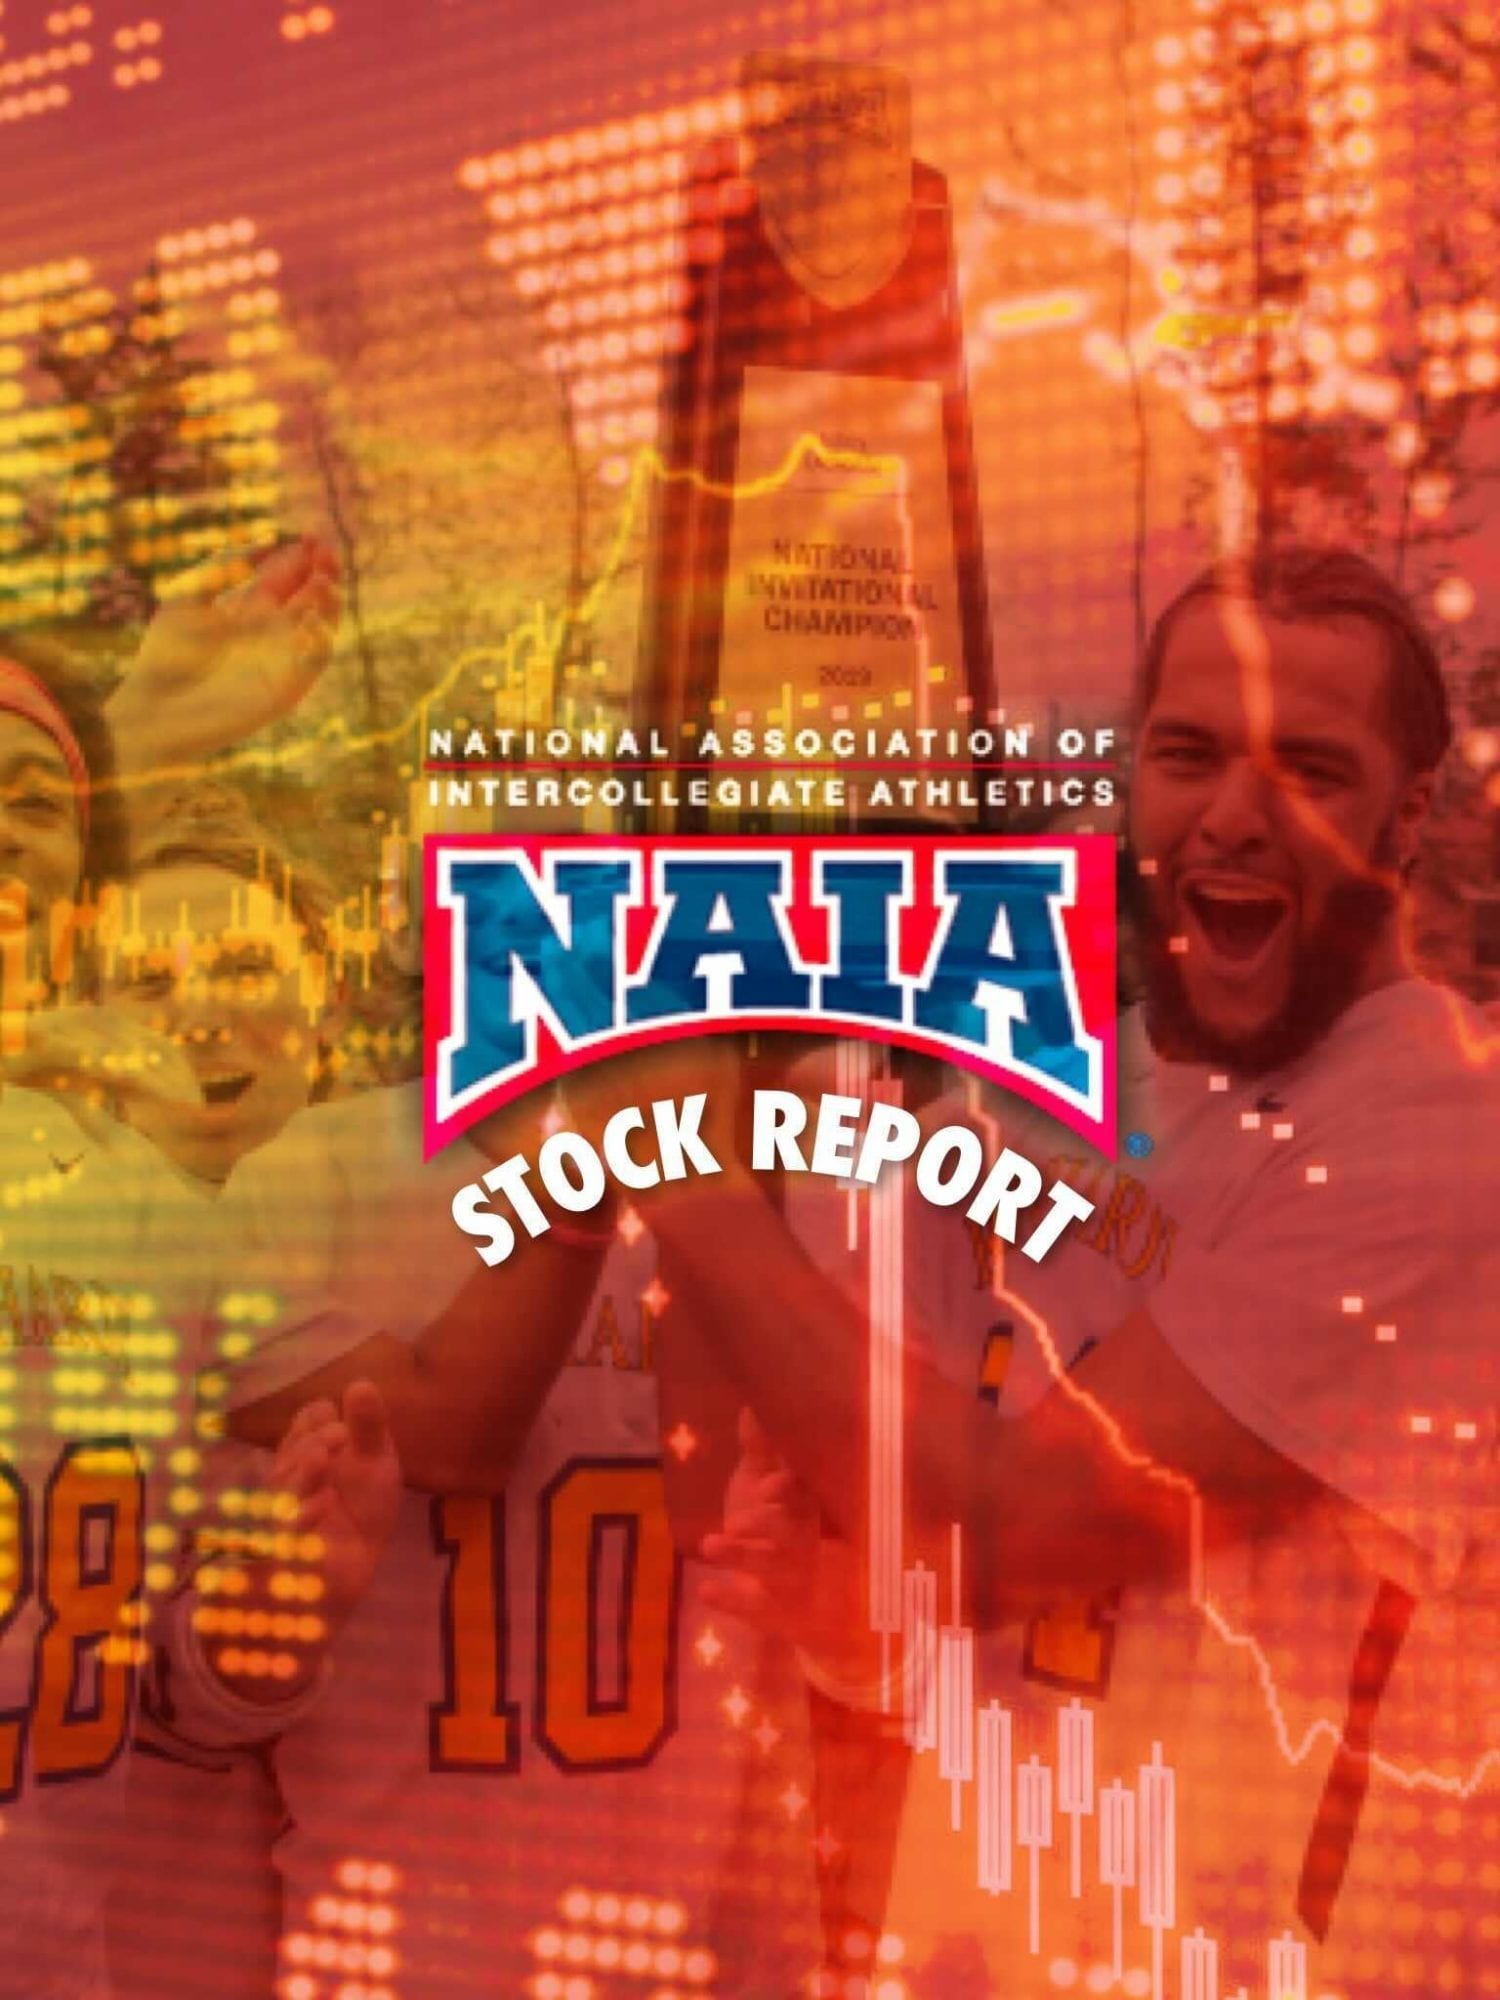 Indiana Tech, St. Ambrose and Siena Heights are making some serious moves in NAIA lacrosse. Now is the time to invest in their stocks.